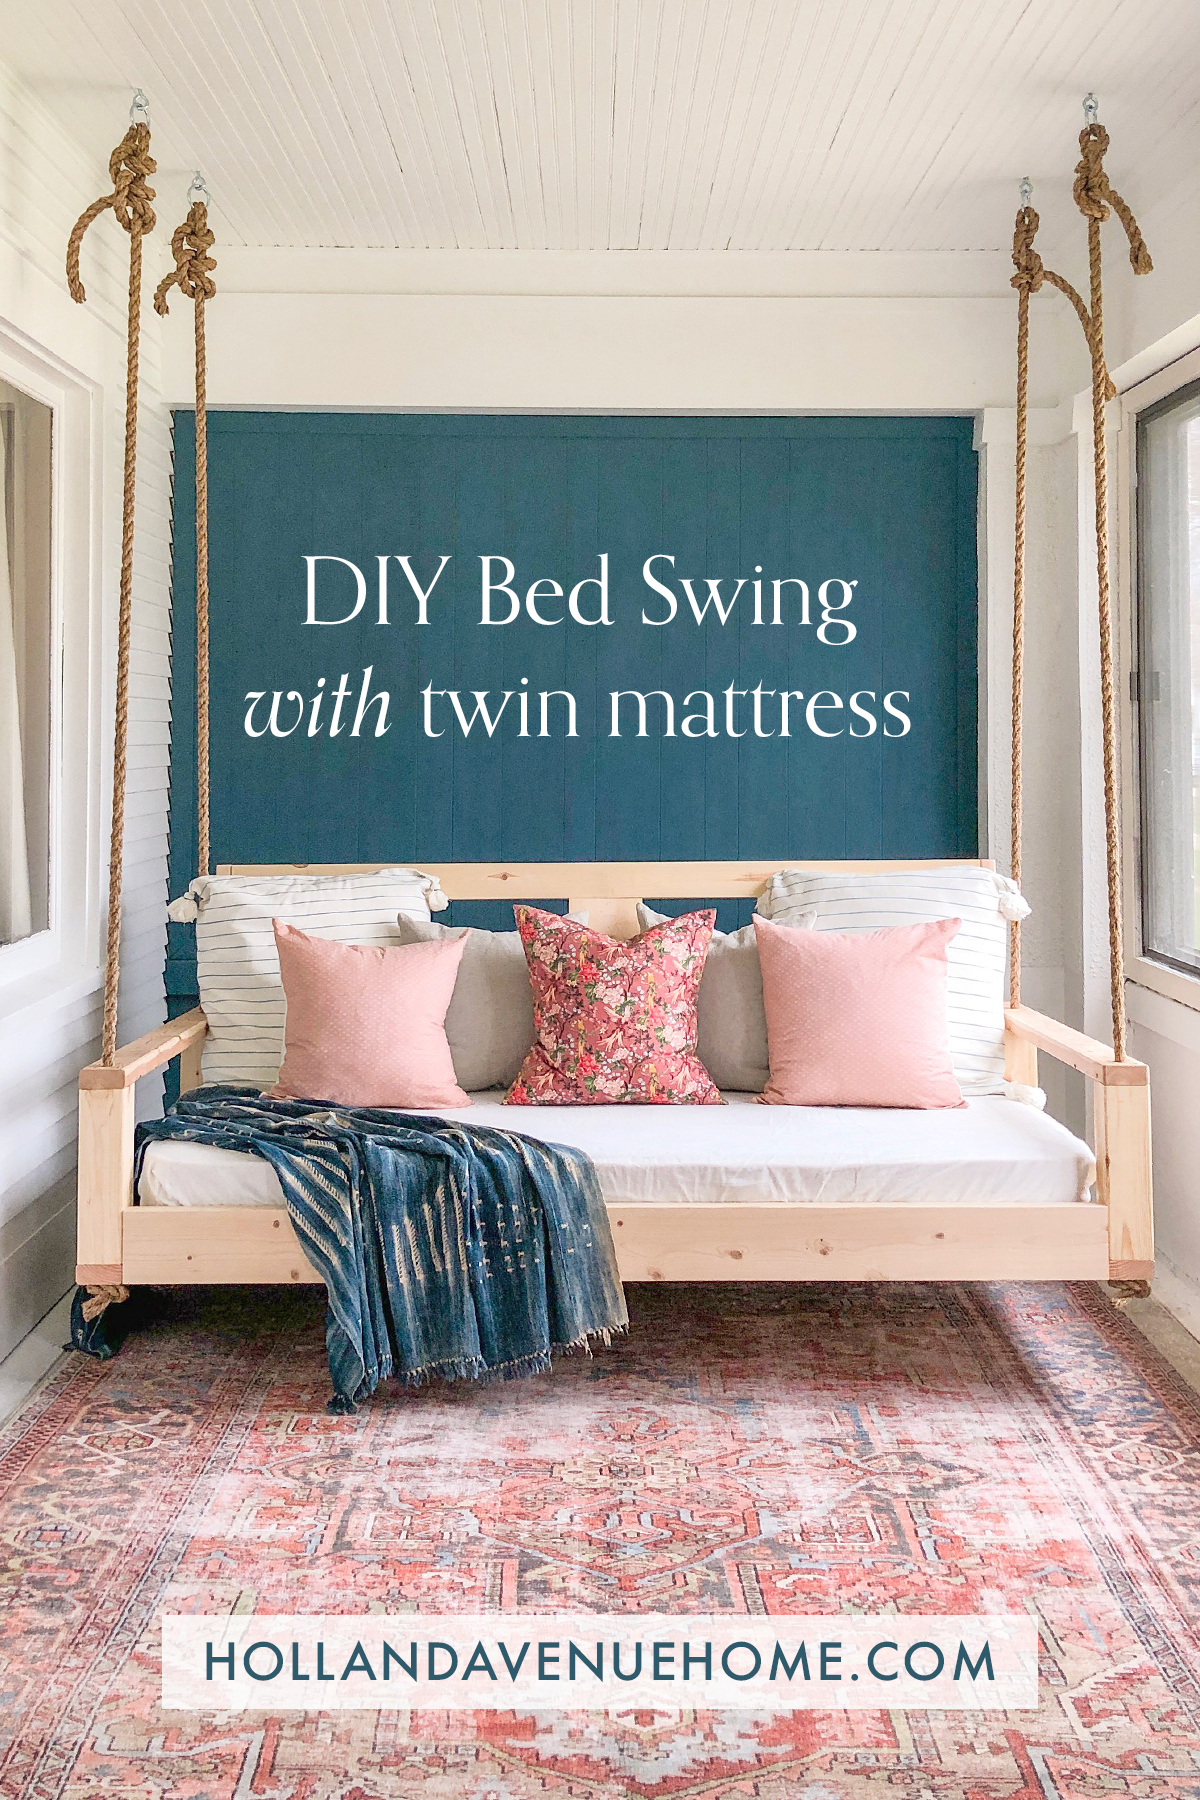 BED SWING PINTEREST PROMO